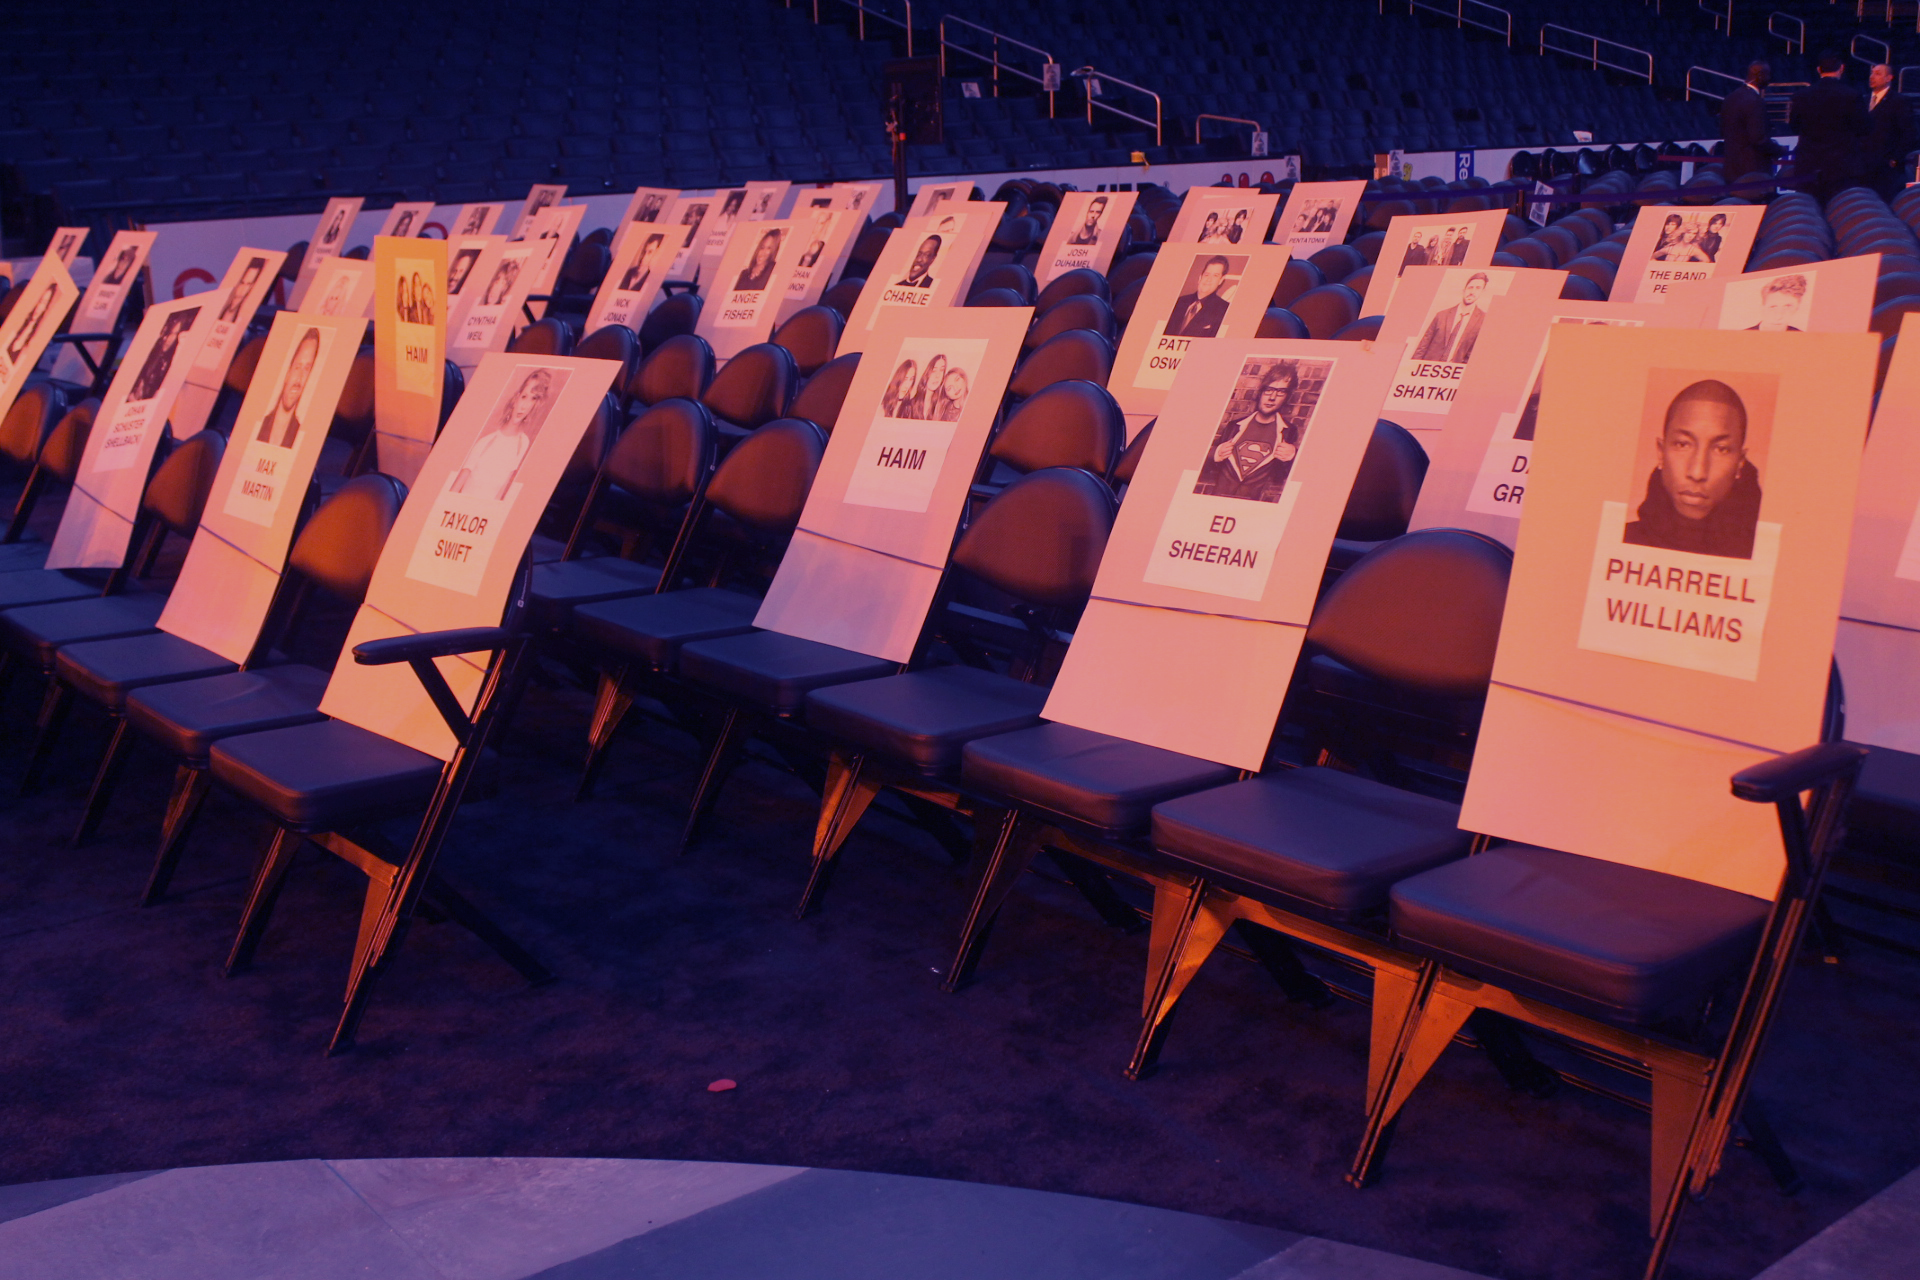 57th grammy awards 2015 seating arrangements